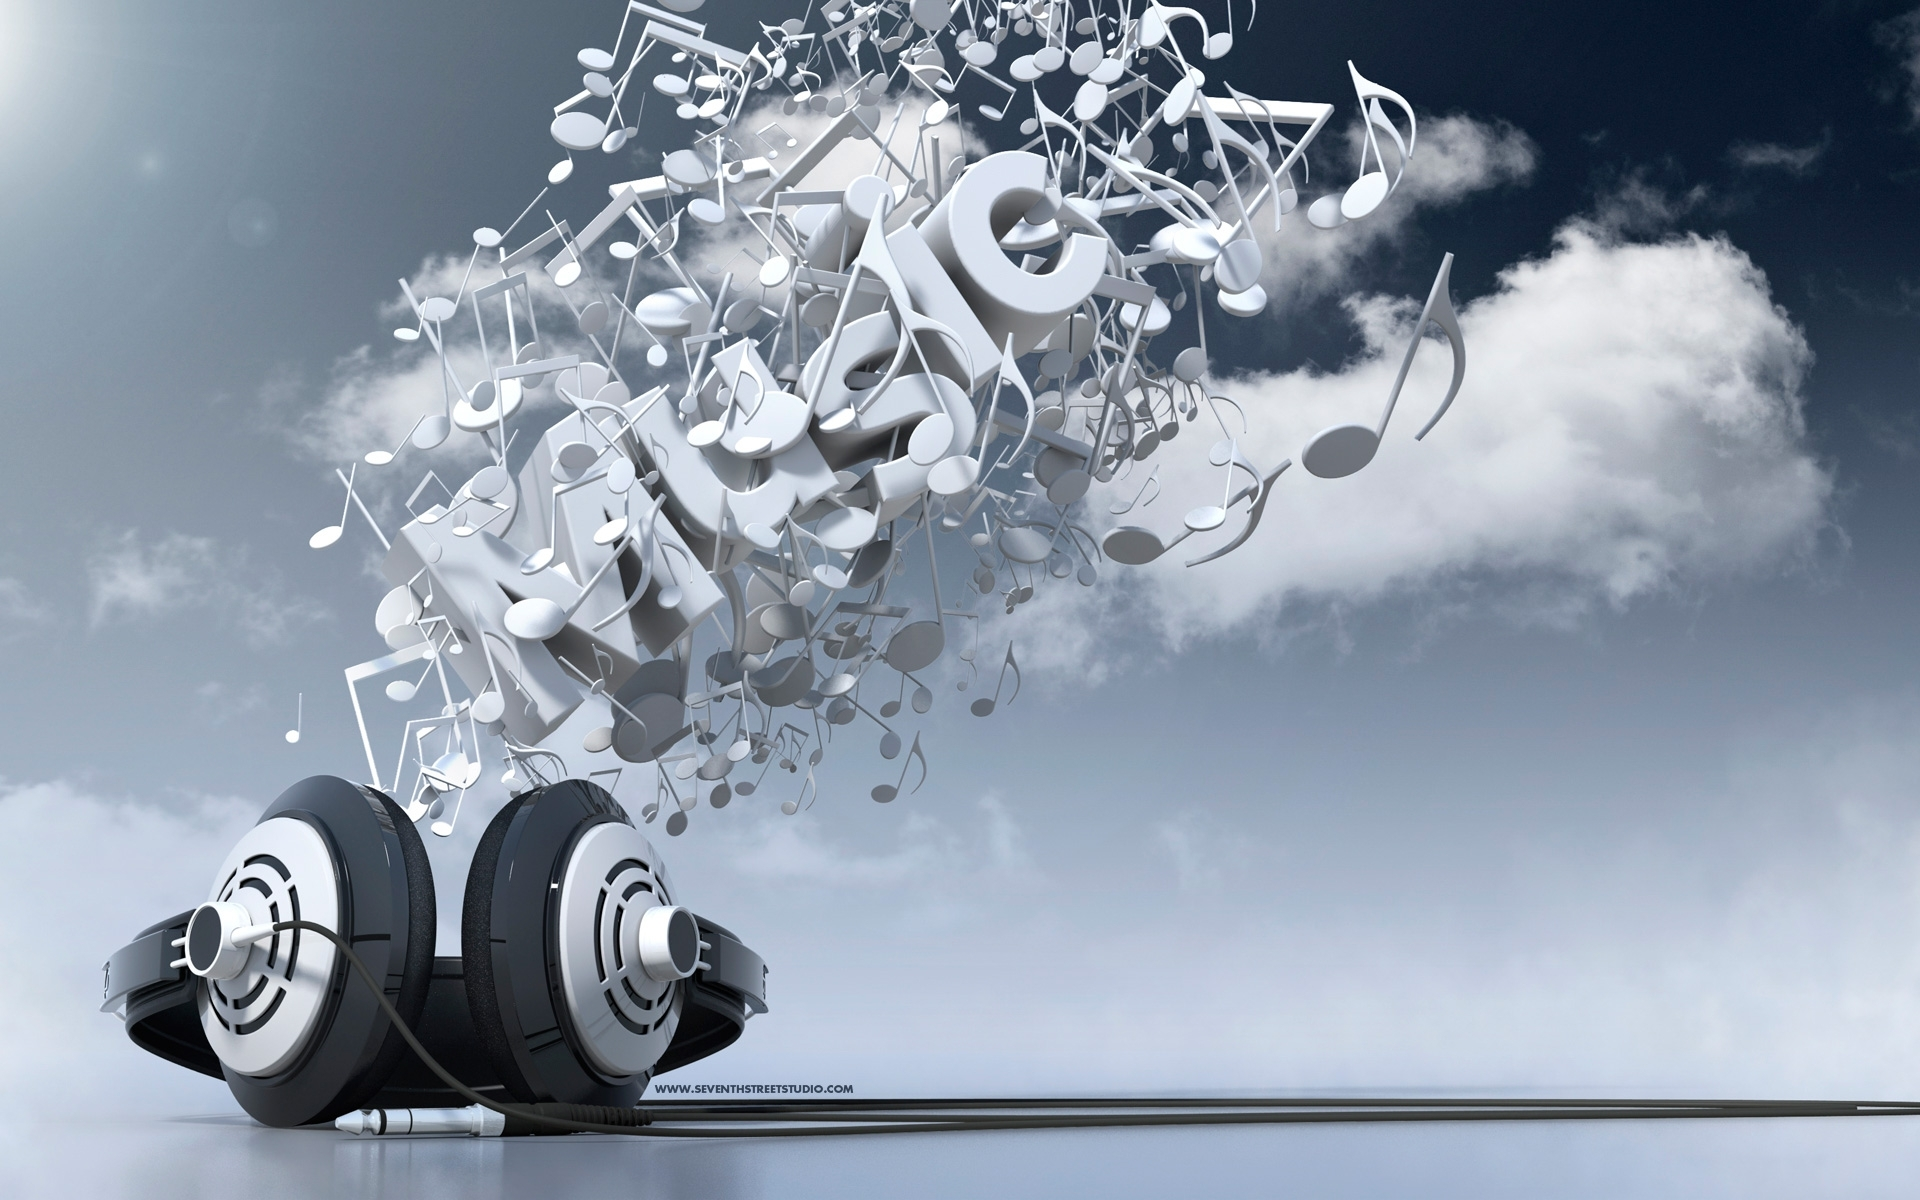 abstract music 3d headphone images wallpaper h #4352 wallpaper